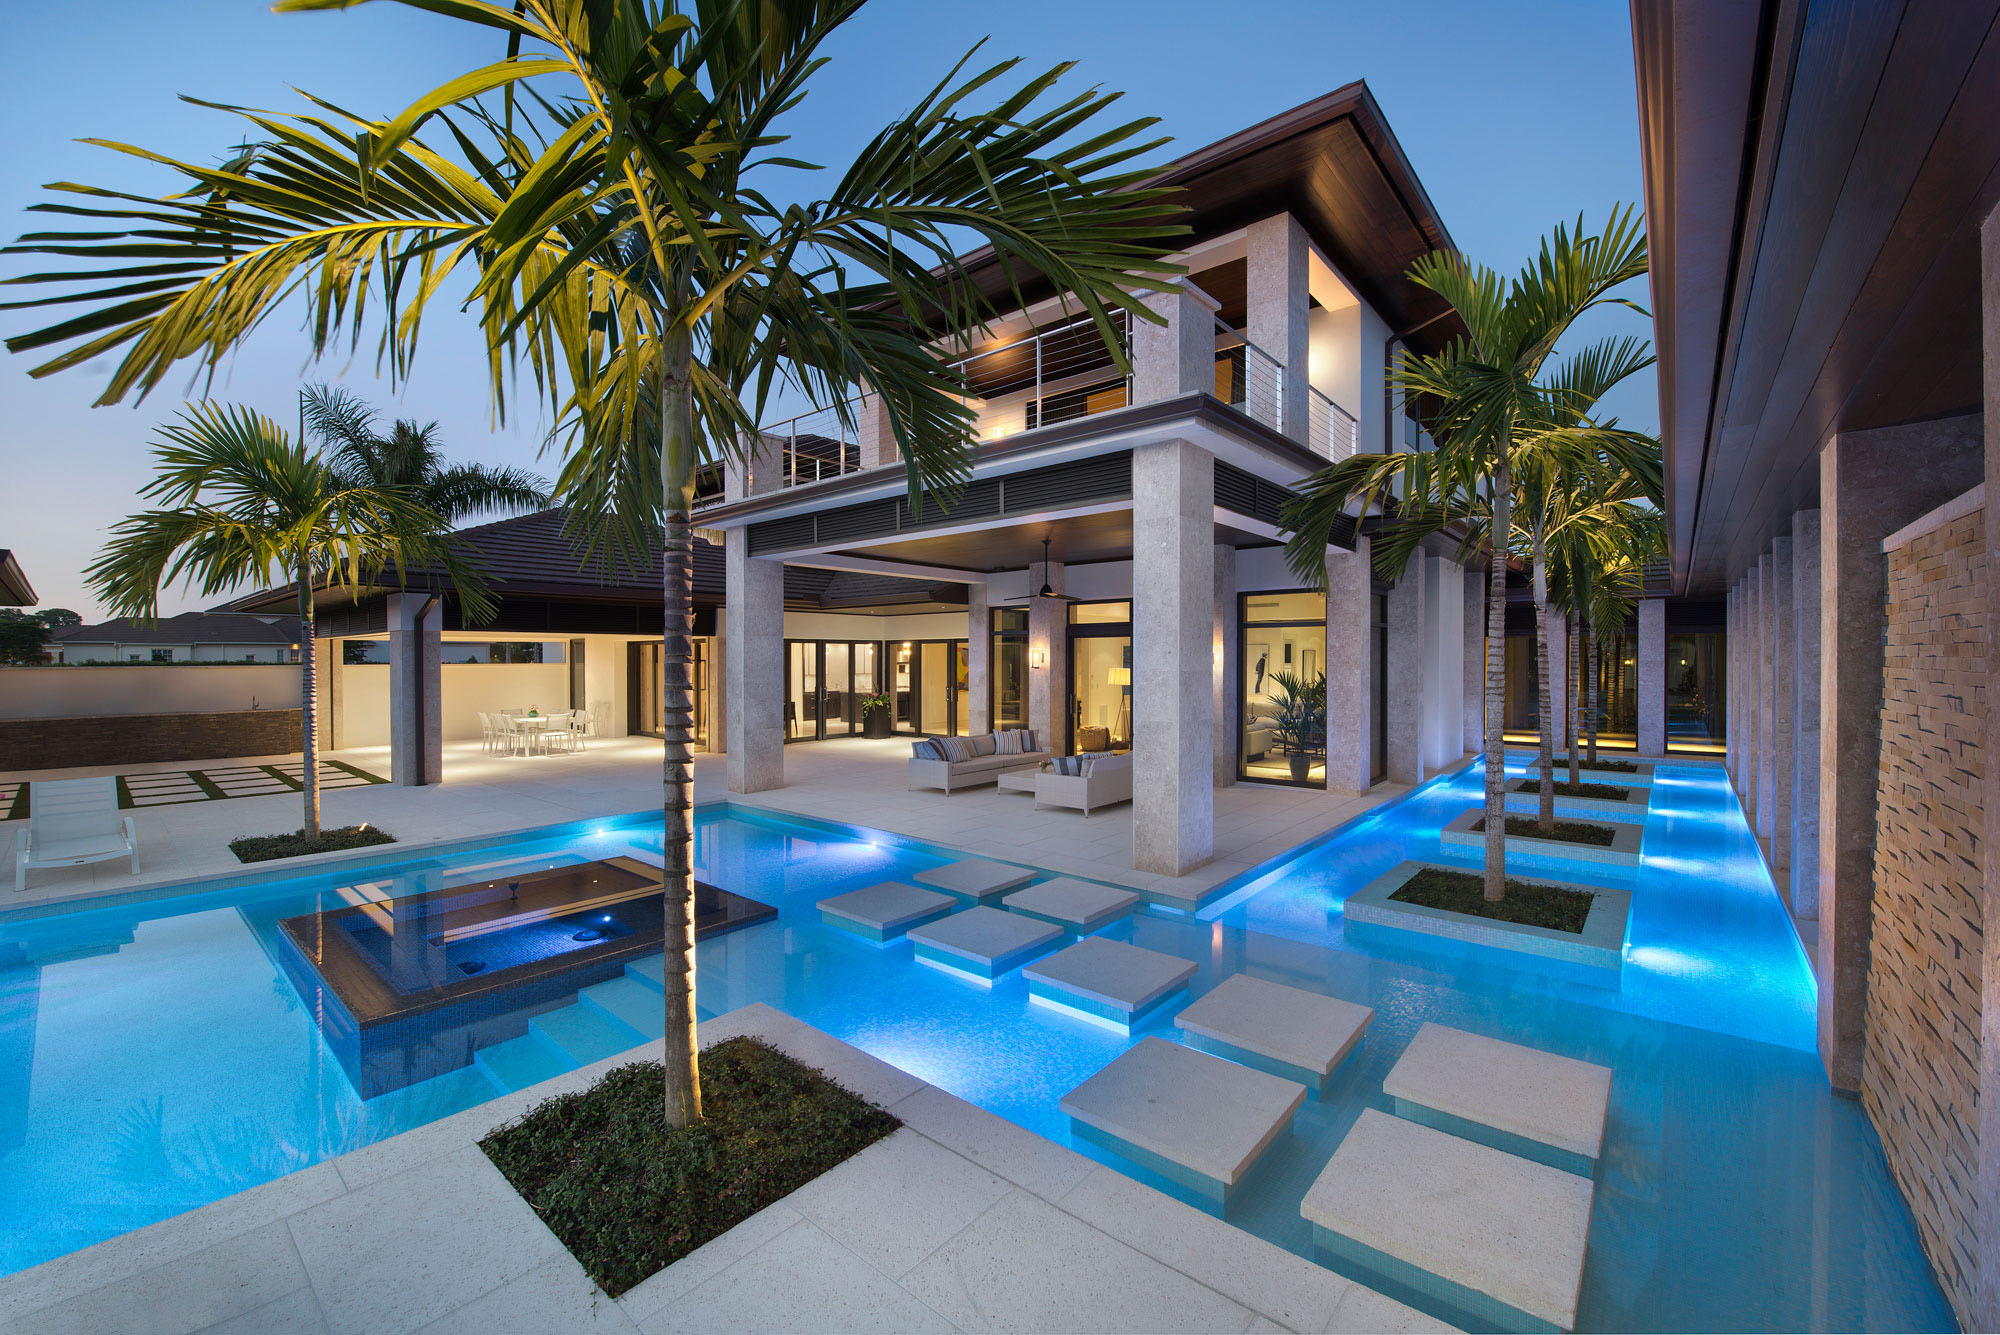 Custom dream home in florida with elegant swimming pool for Luxury homes architecture design